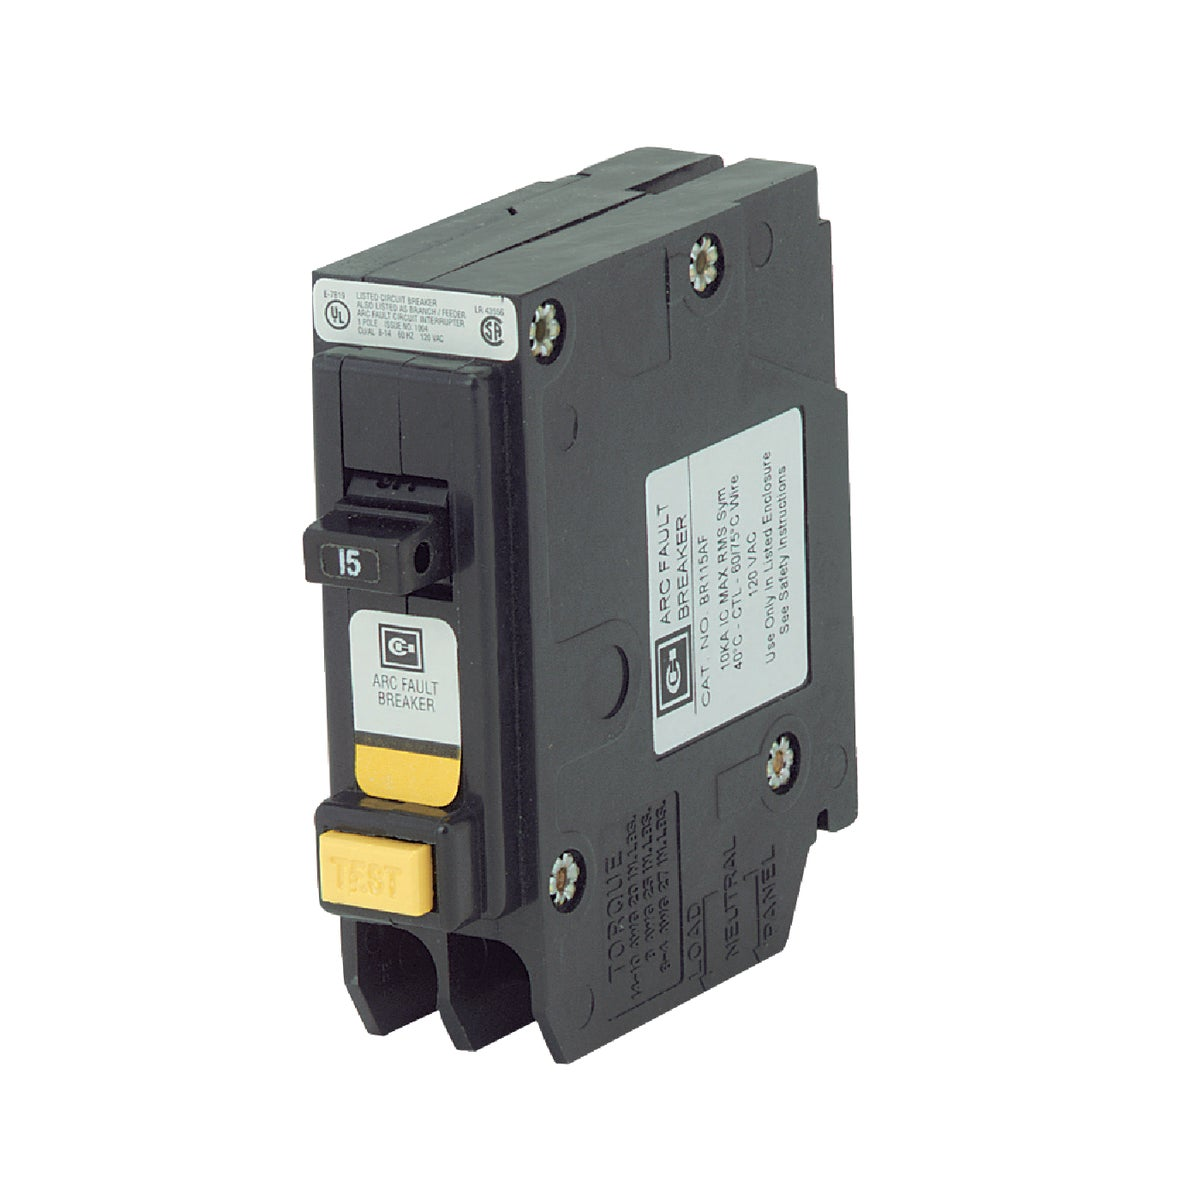 ARC FAULT CIRC BREAKER - BR115AF by Eaton Corporation